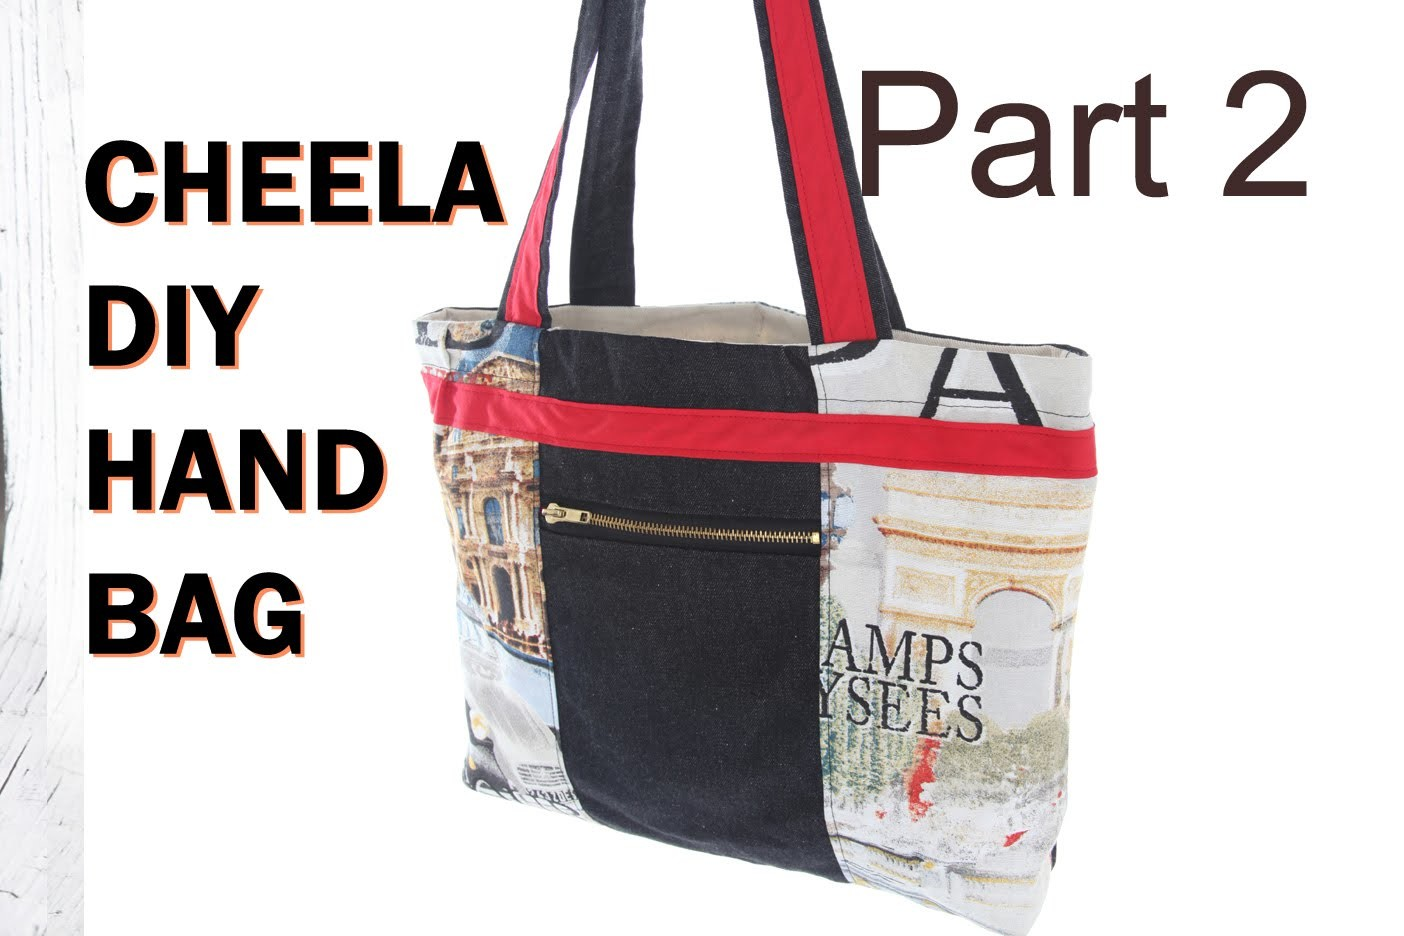 Cheela Version 2b. with zip pouch and lining. DIY Bag Vol 19B